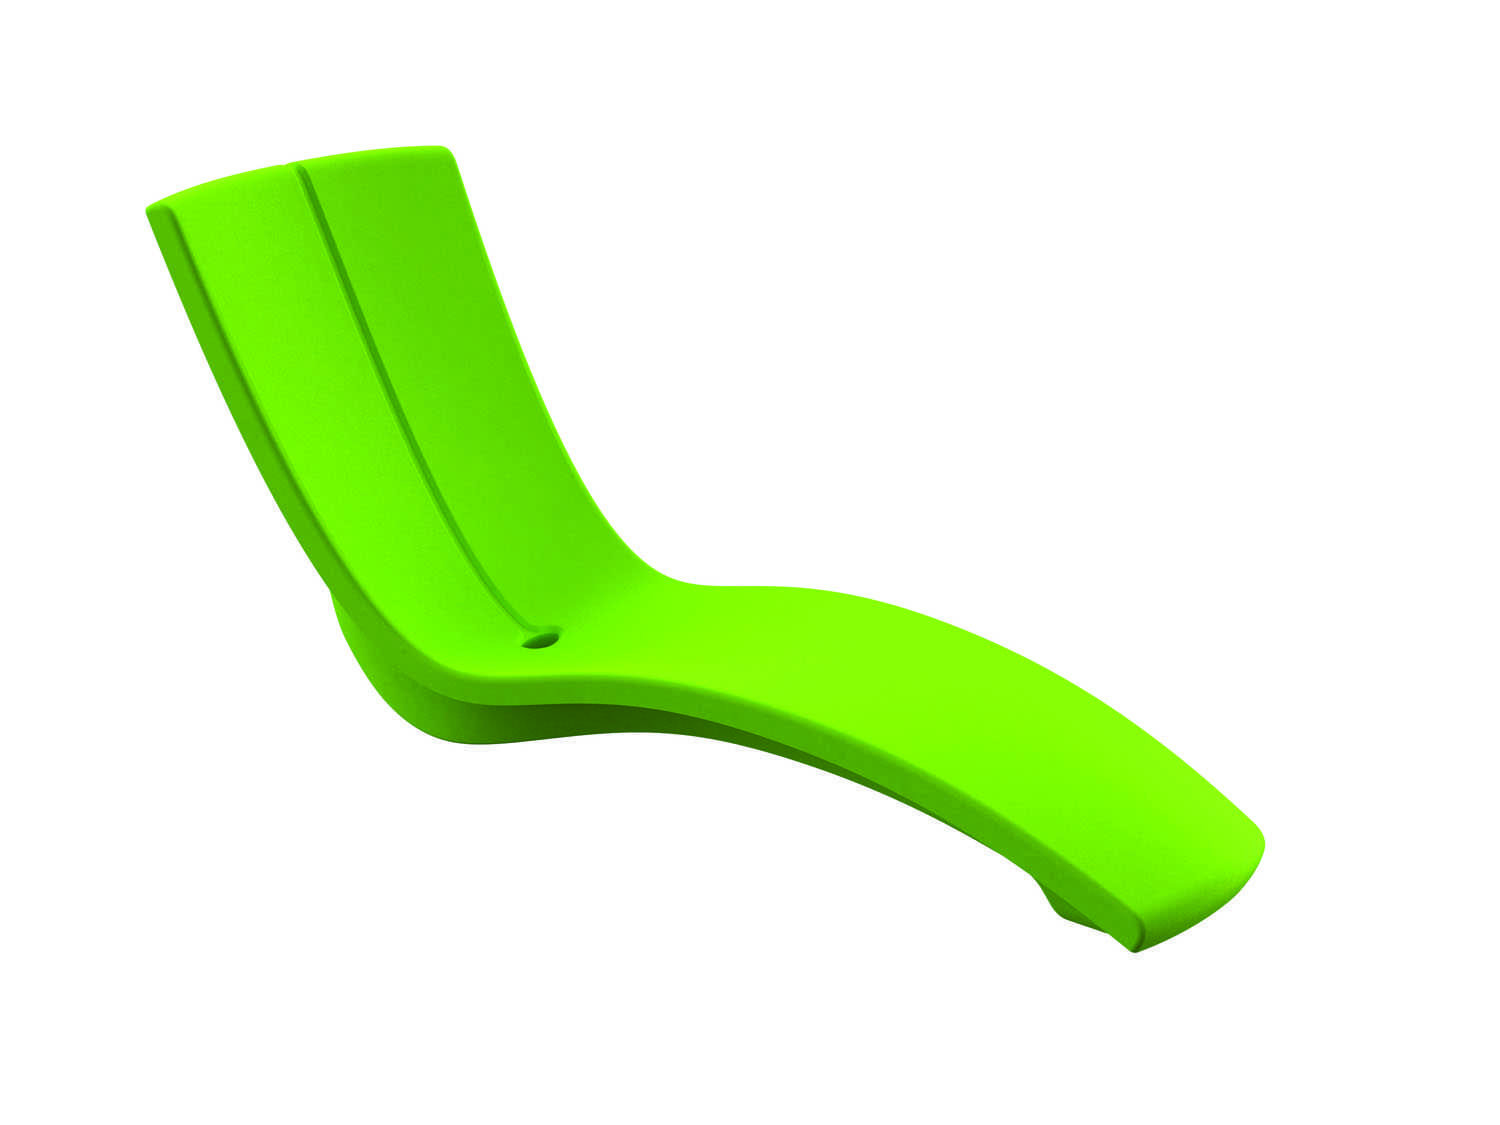 Tropitone Curve Recycled Plastic Rotoform3 Chaise Lounge